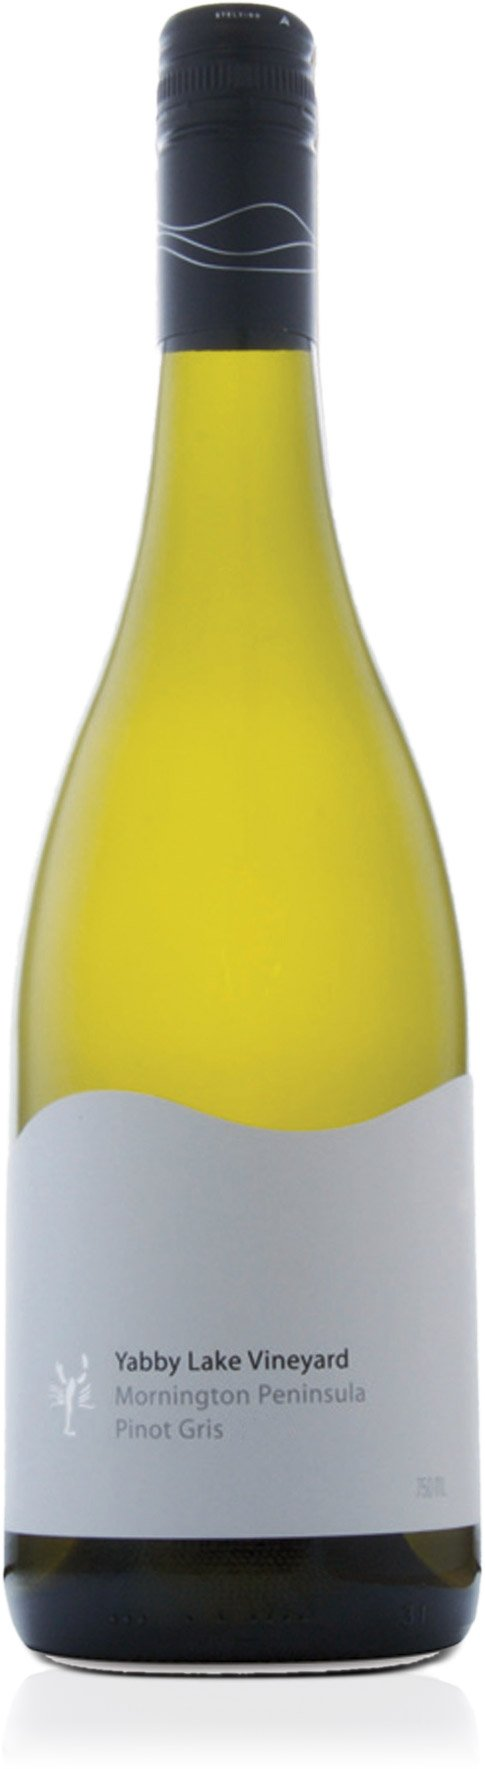 Yabby Lake-2019 Yabby Lake Pinot Gris-Pubble Alcohol Delivery